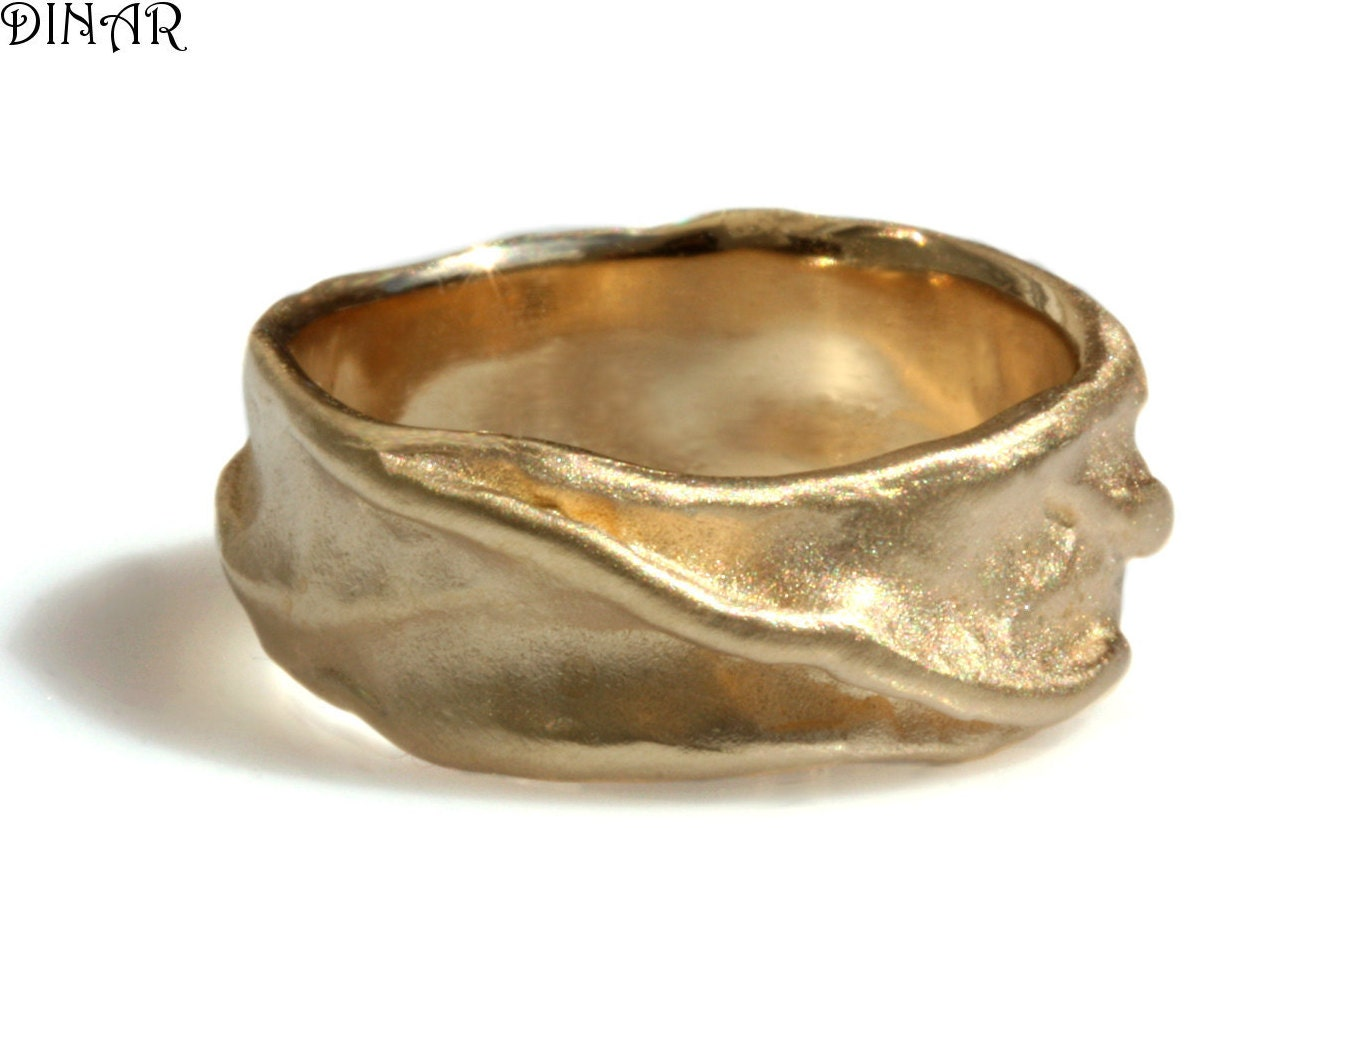 14k solid gold wedding band gold band thick band folded